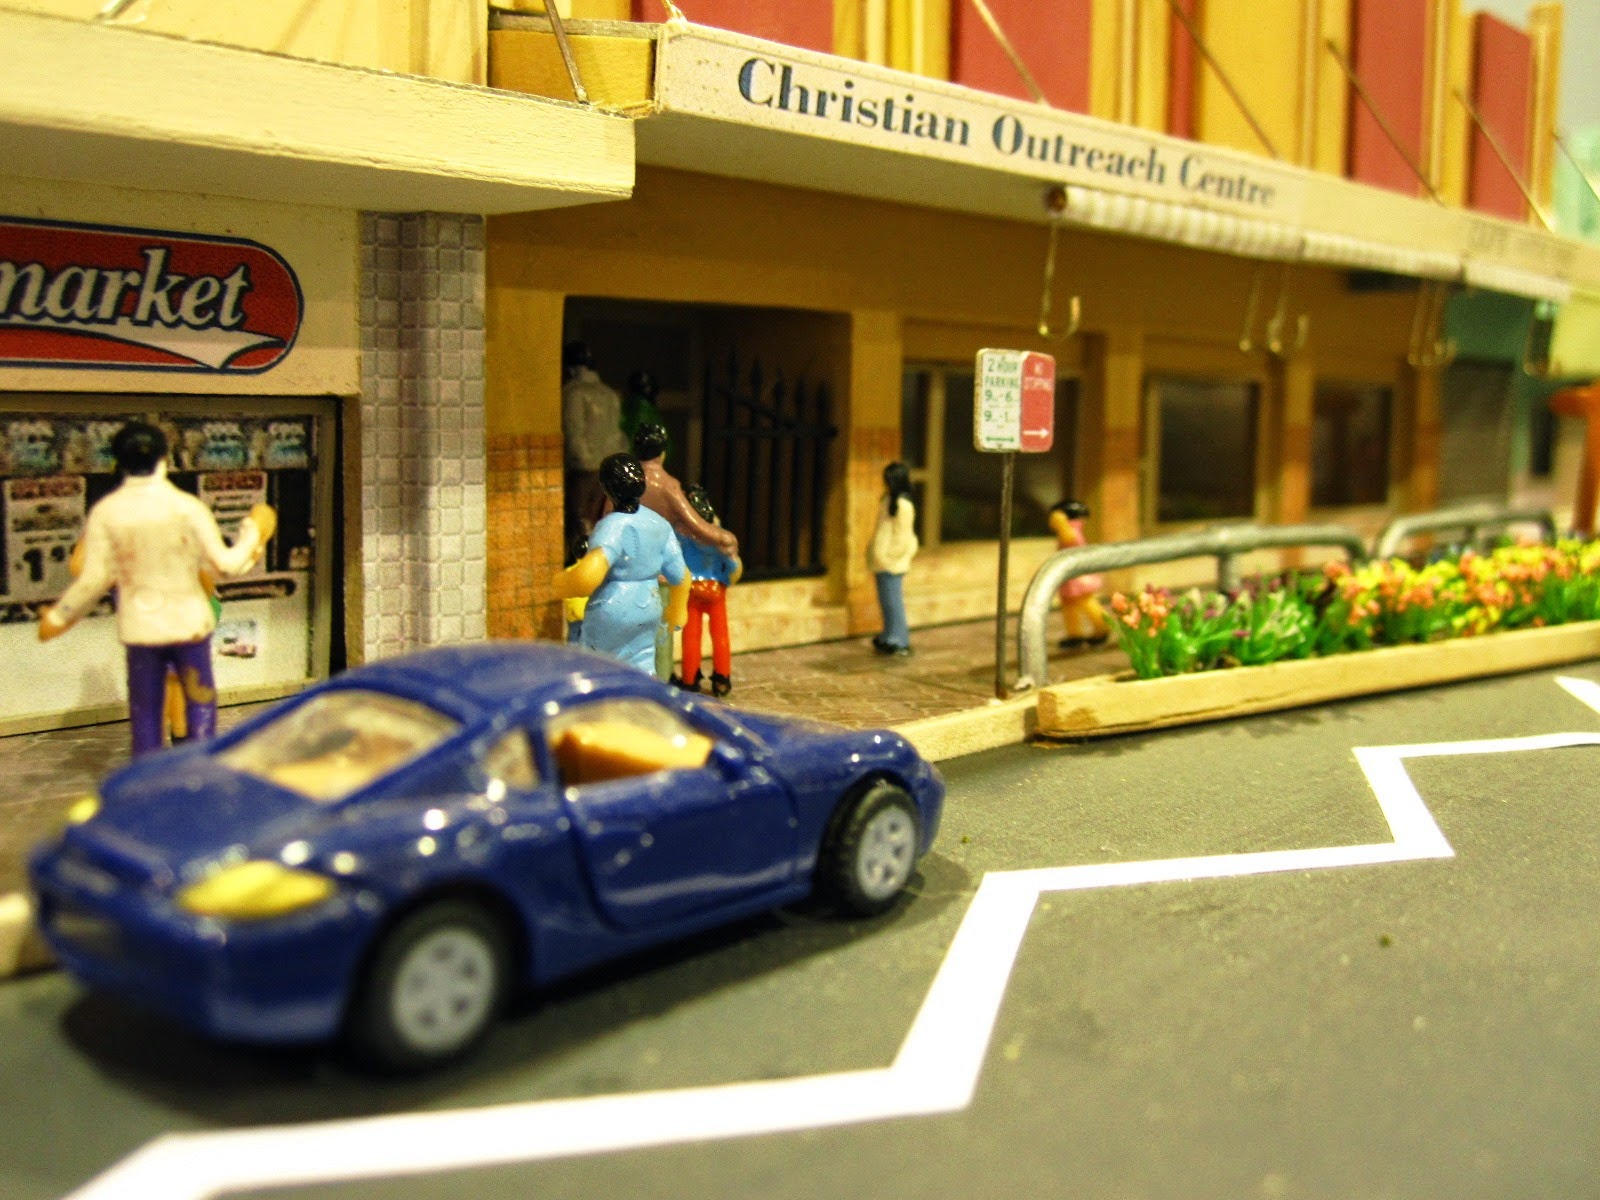 Quarter inch scale modern Australian town street scene with supermarket and Christian Outreach Centre.